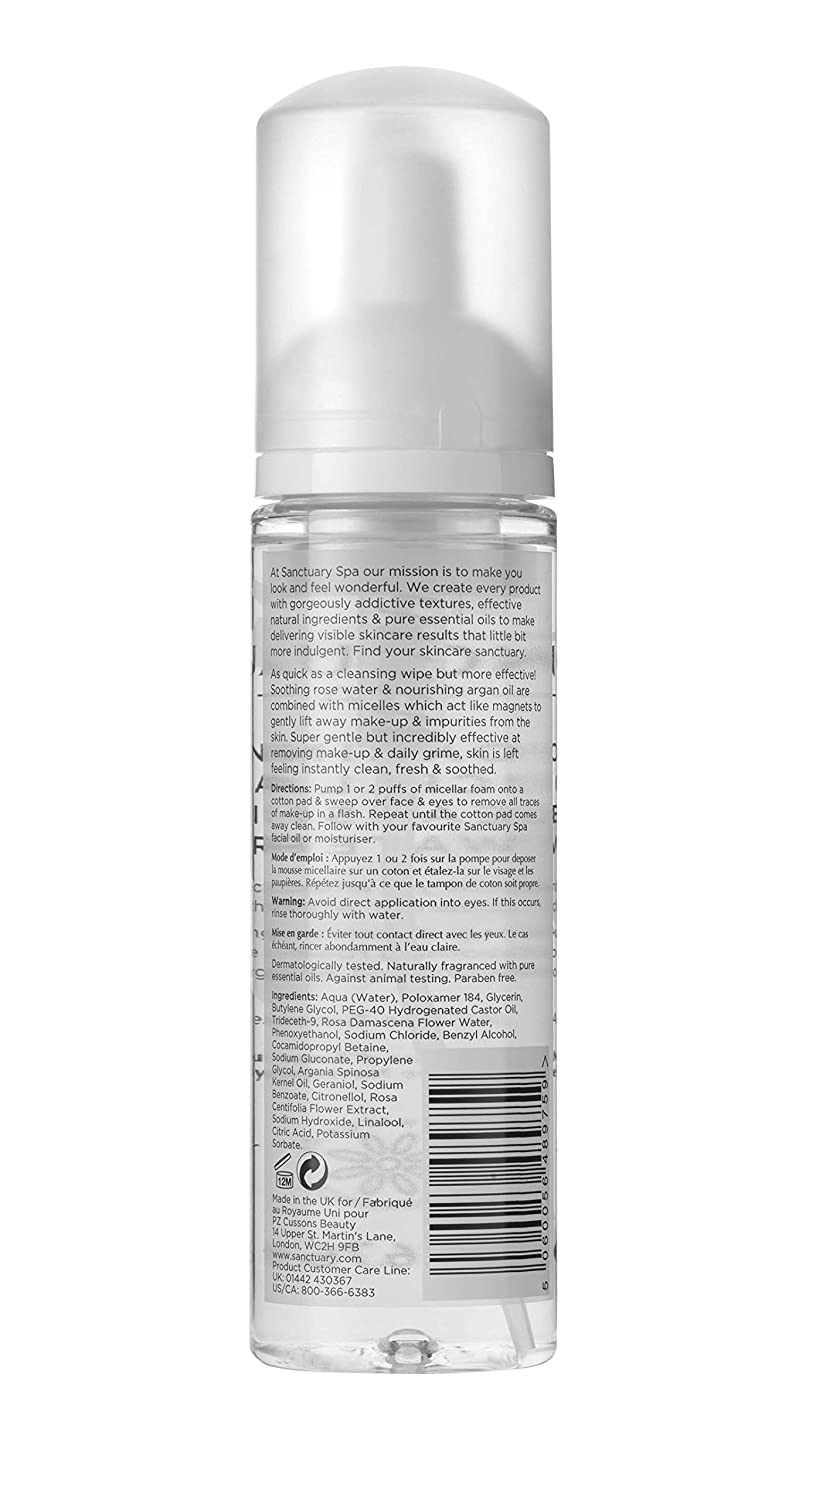 Sanctuary Spa Foaming Micellar Cleansing Water 200 Ml Cussons Baby Liquid Cleanser 300 100ml Beauty